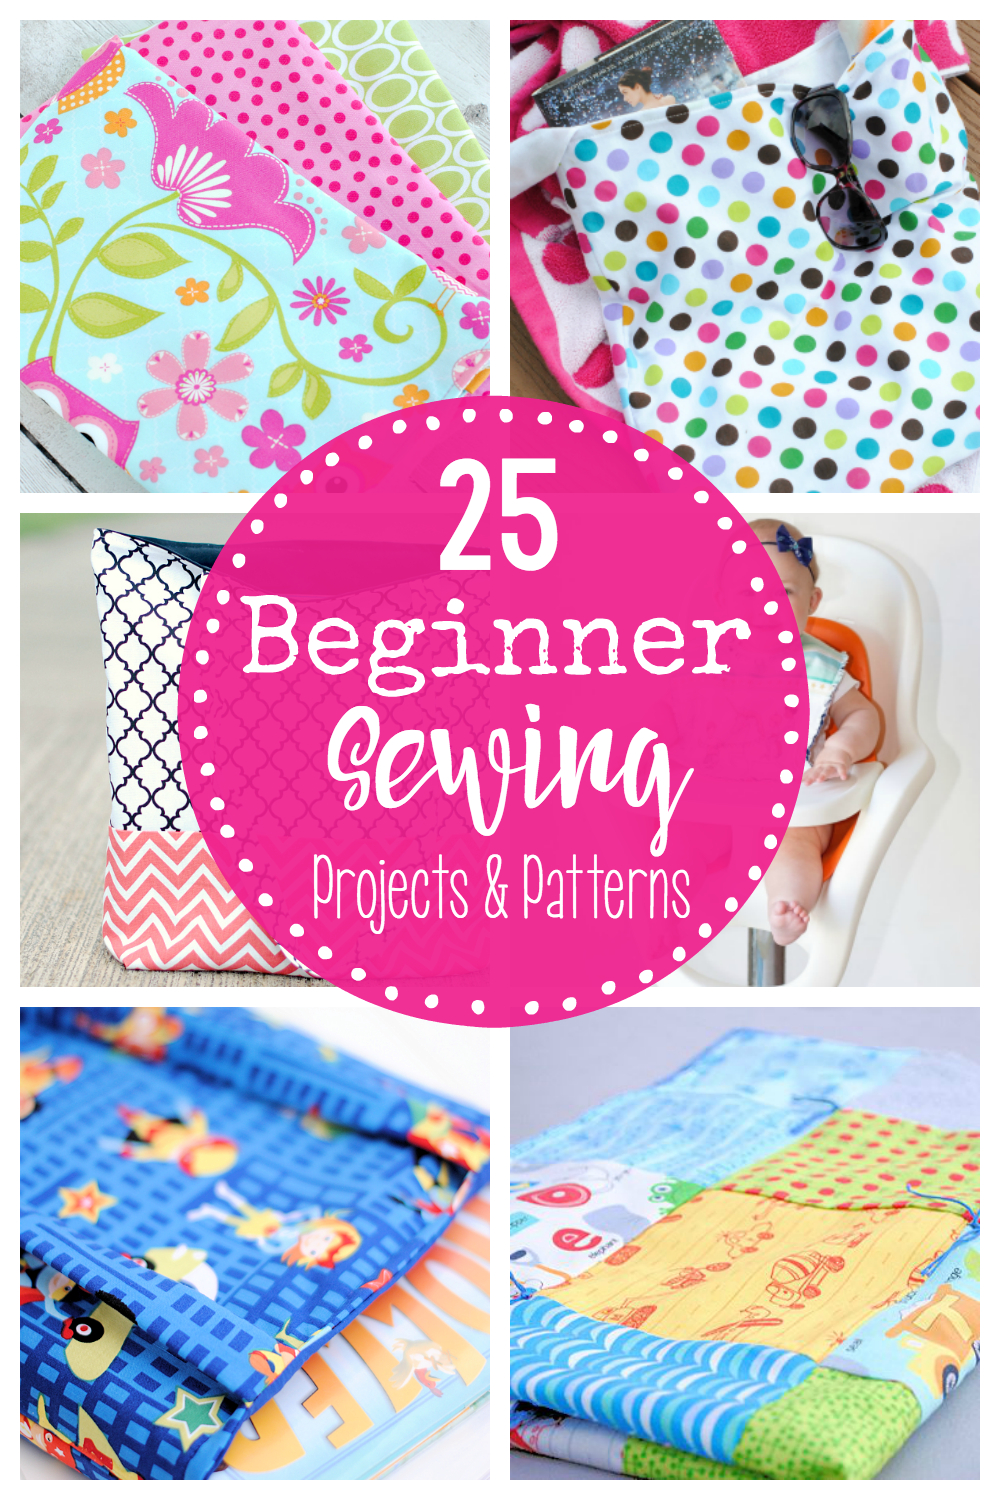 25 Beginner Sewing Projects - Free Printable Sewing Patterns For Kids